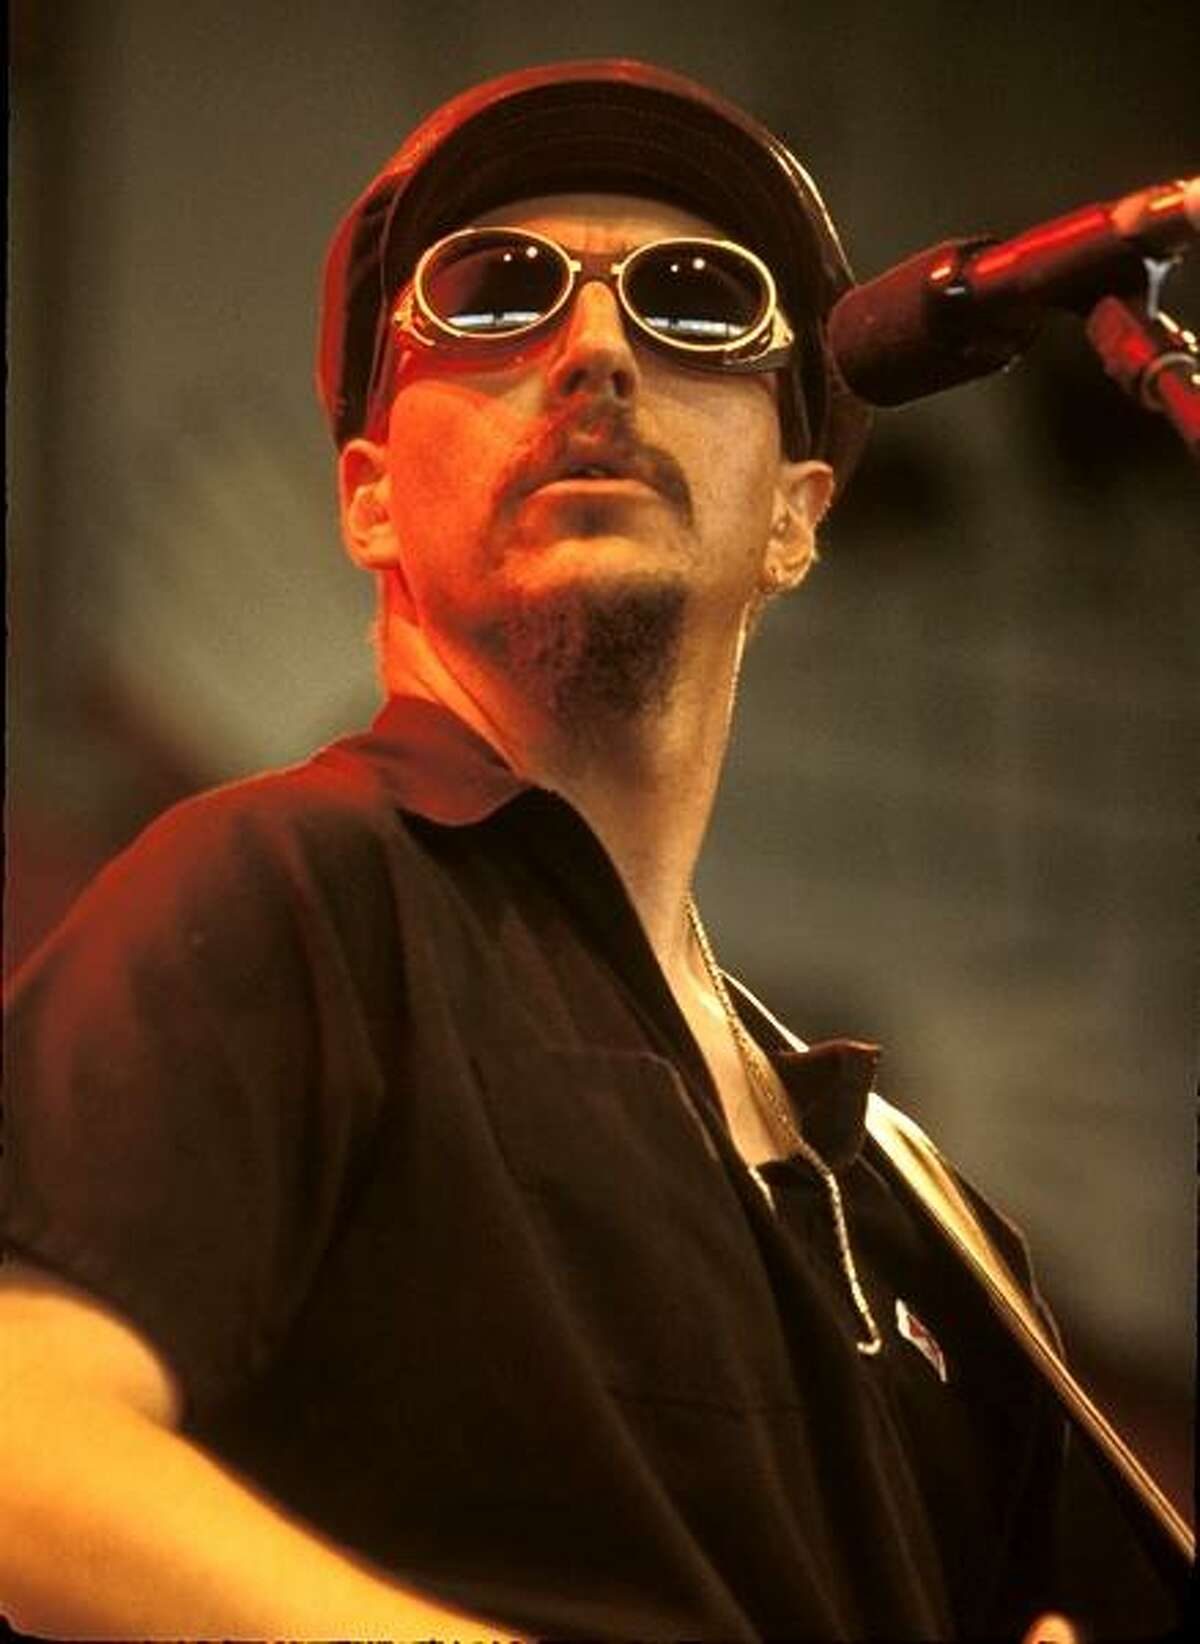 Singer and bassist Les Claypool of the rock band Primus is shown performing on stage during a